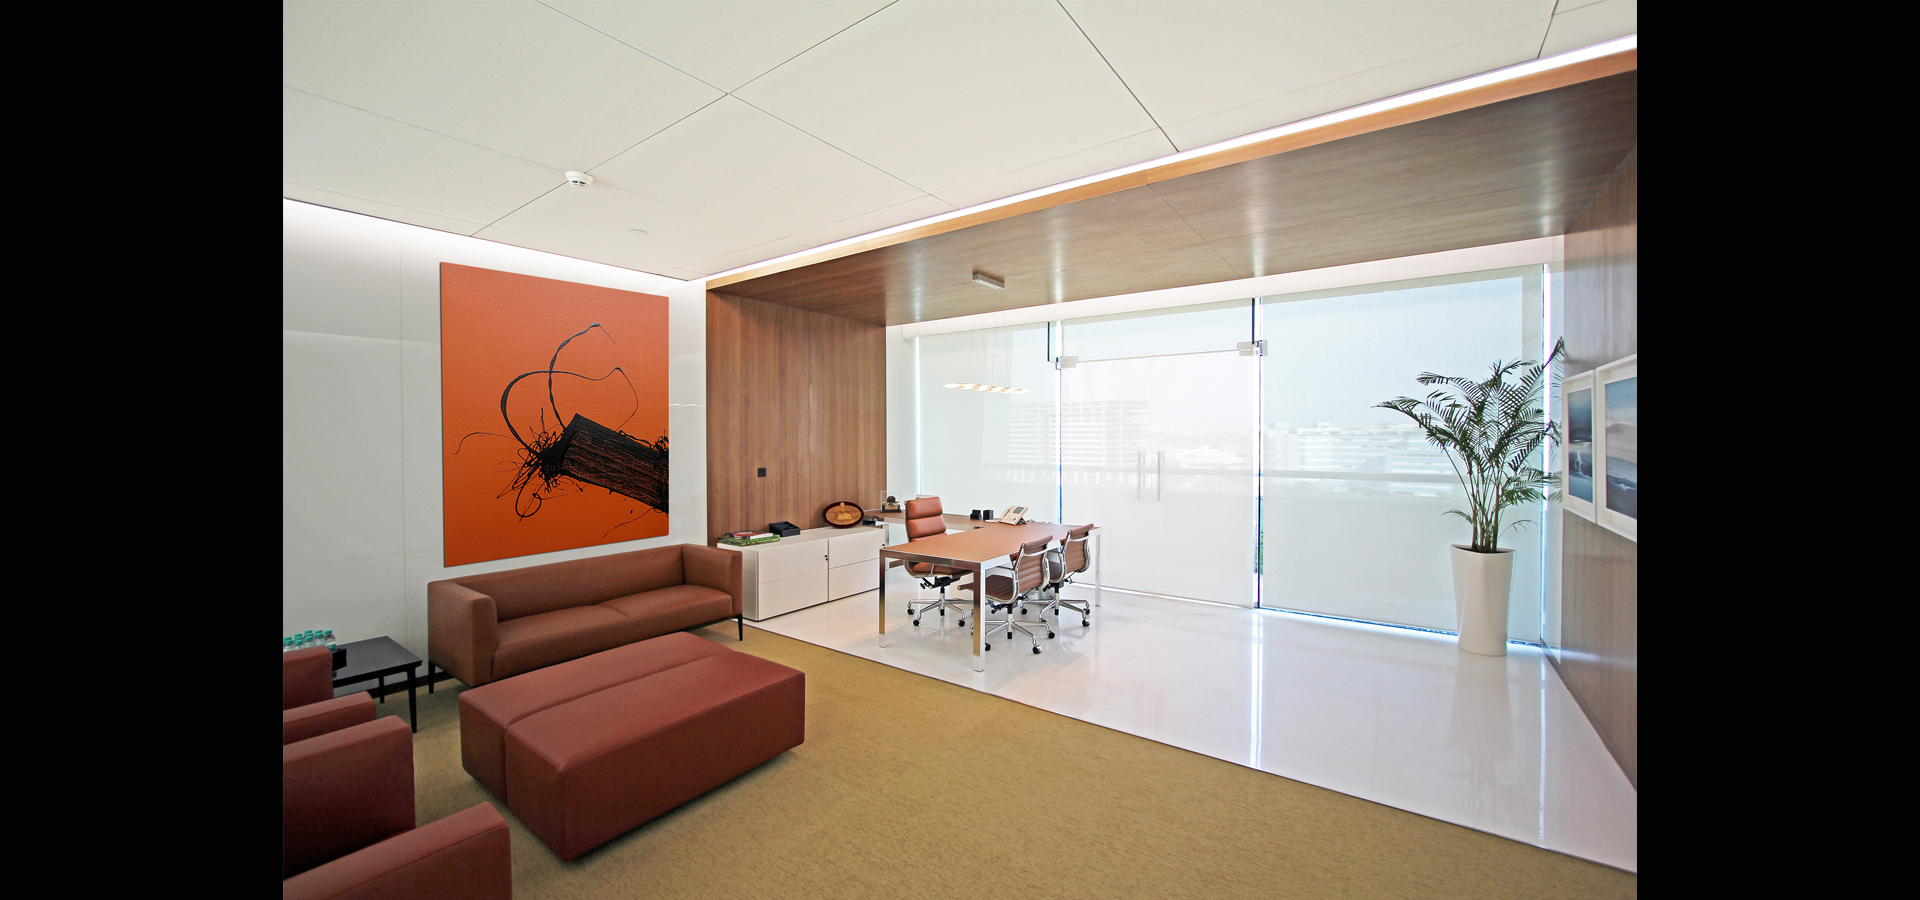 JSW HQ INTERIORS